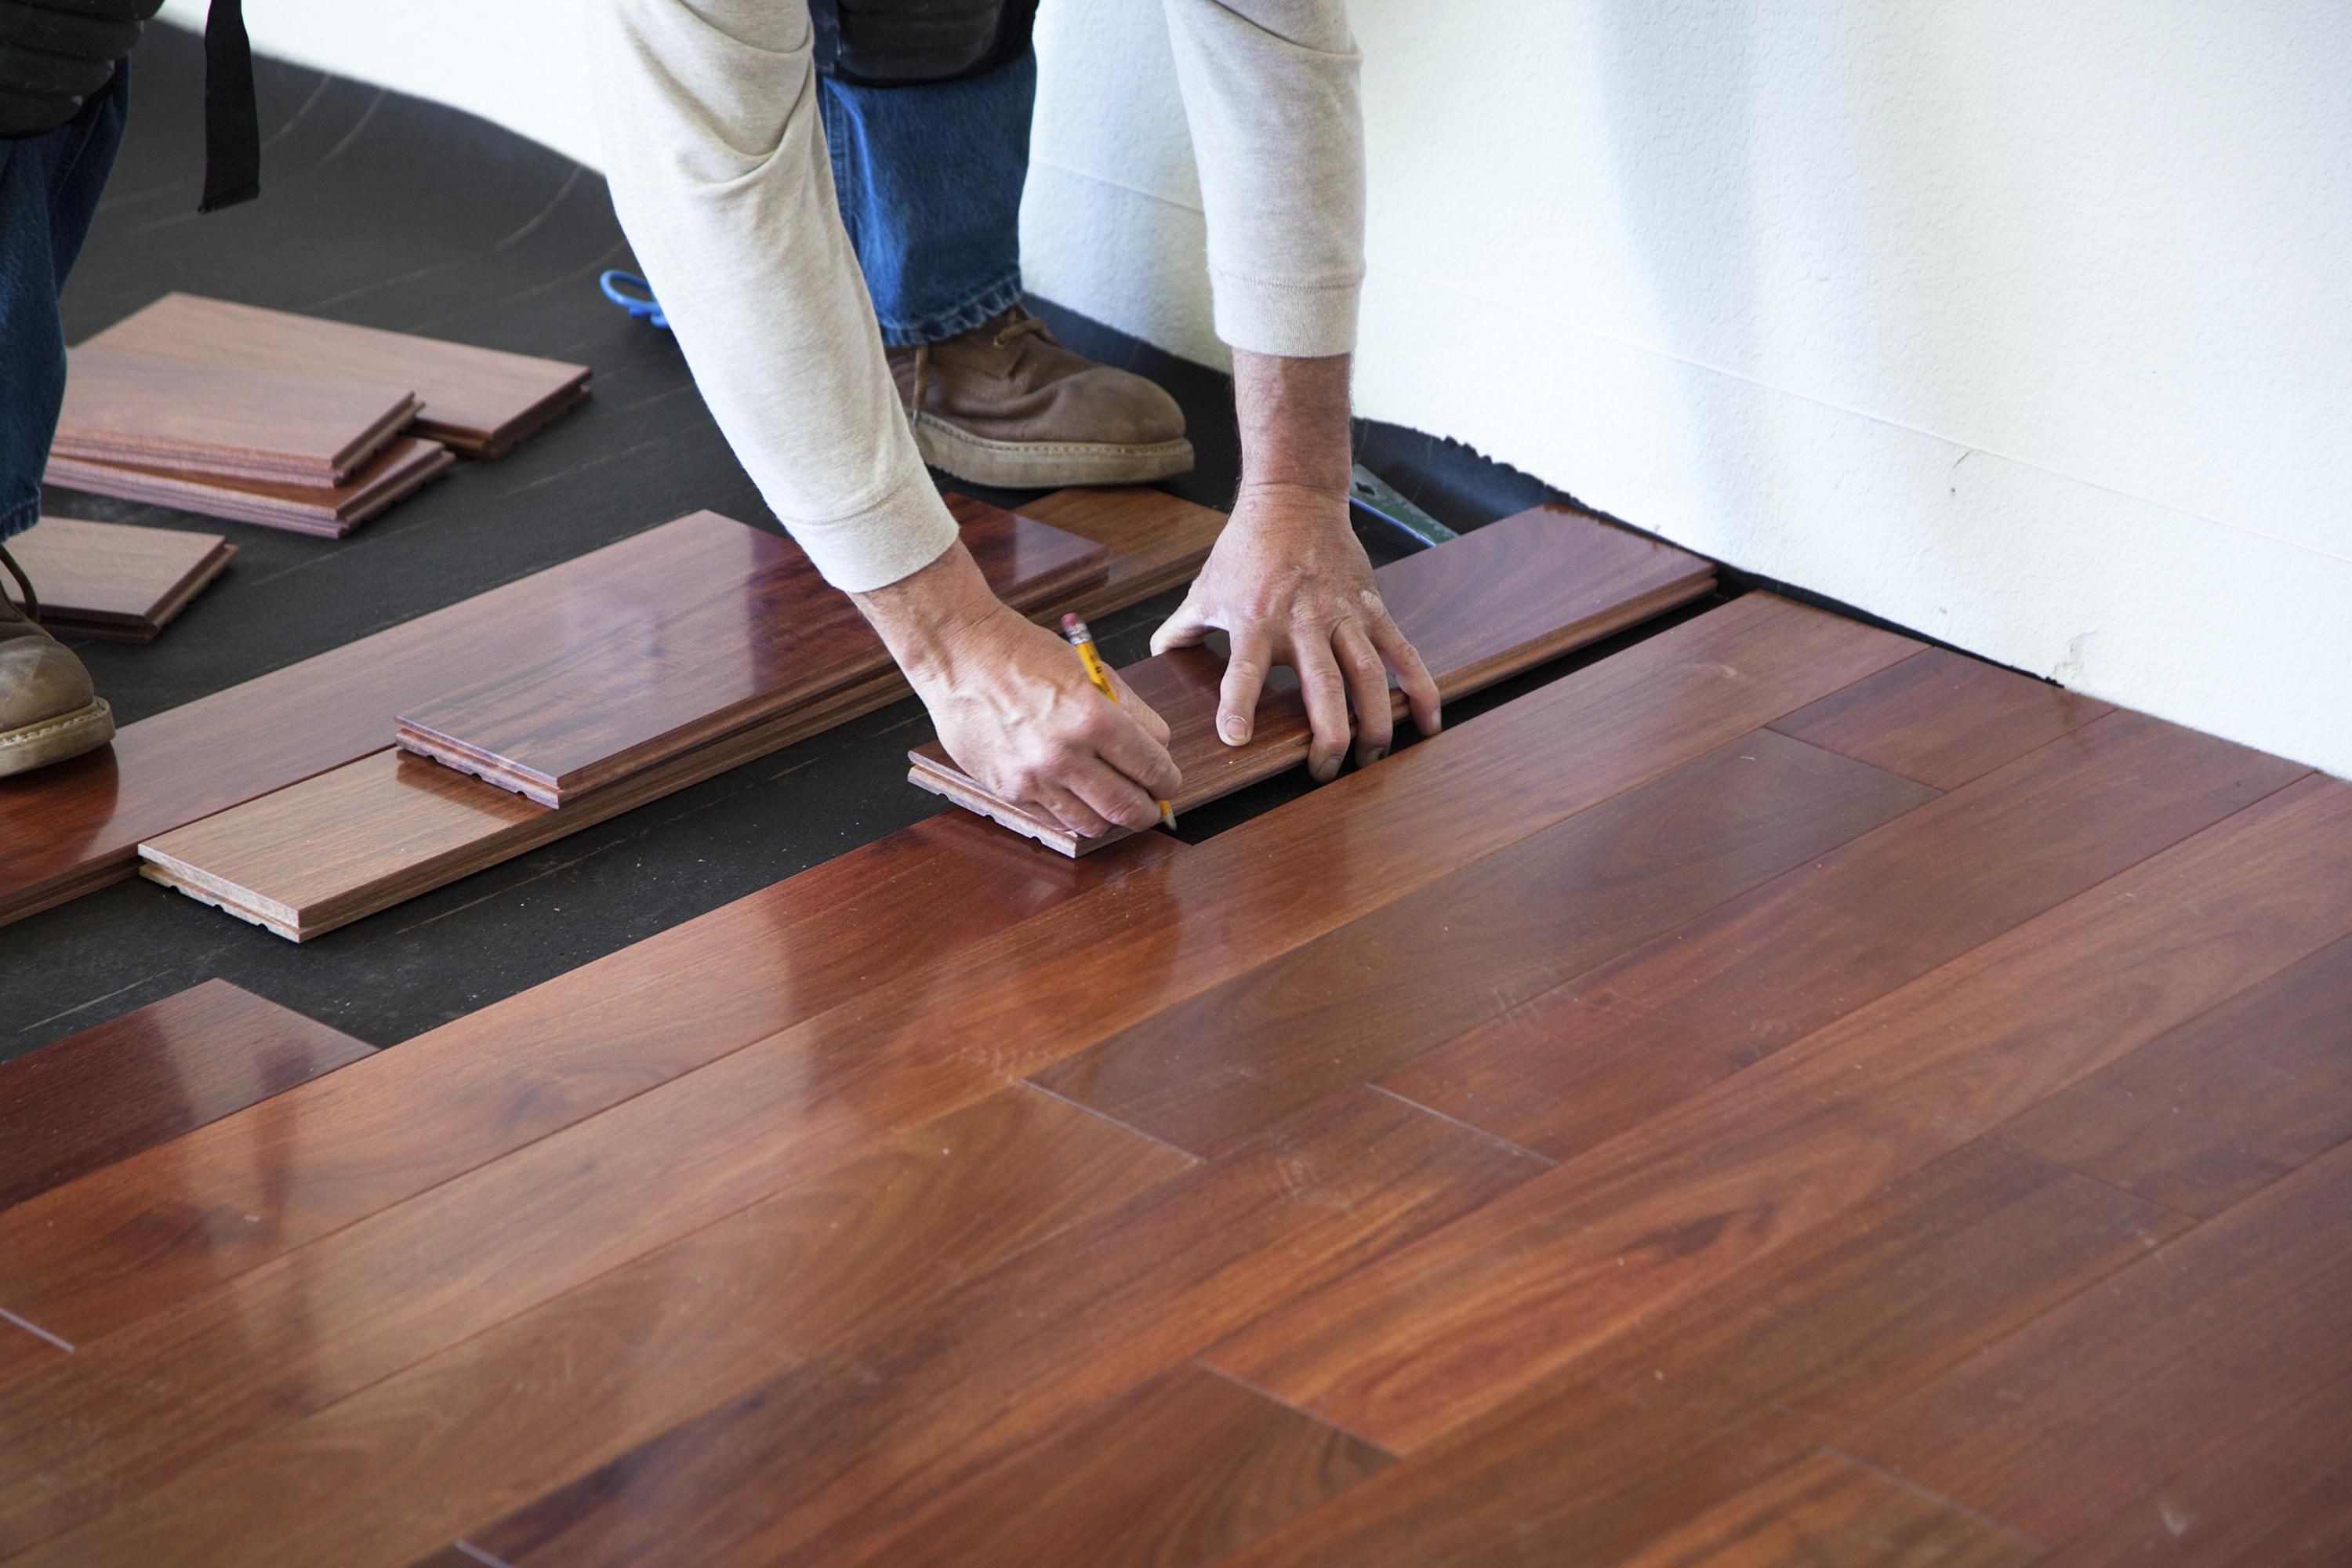 Kraus Hardwood Flooring Reviews Of Brazilian Hardwood Floor Basics Intended for 170040982 56a49f213df78cf772834e21